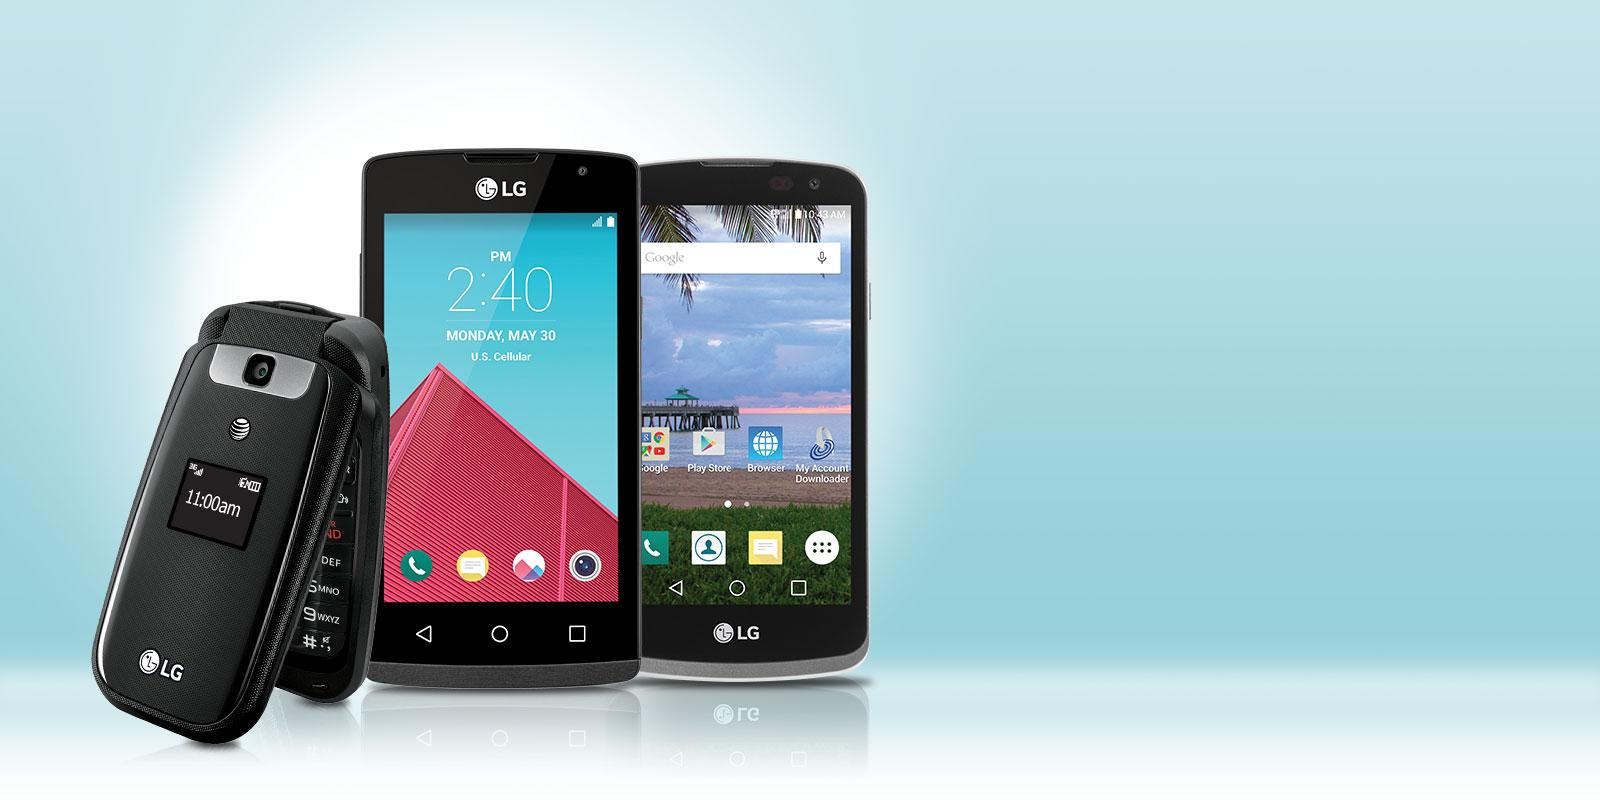 C cricket phones for sale existing customers - Basic Lg Phones